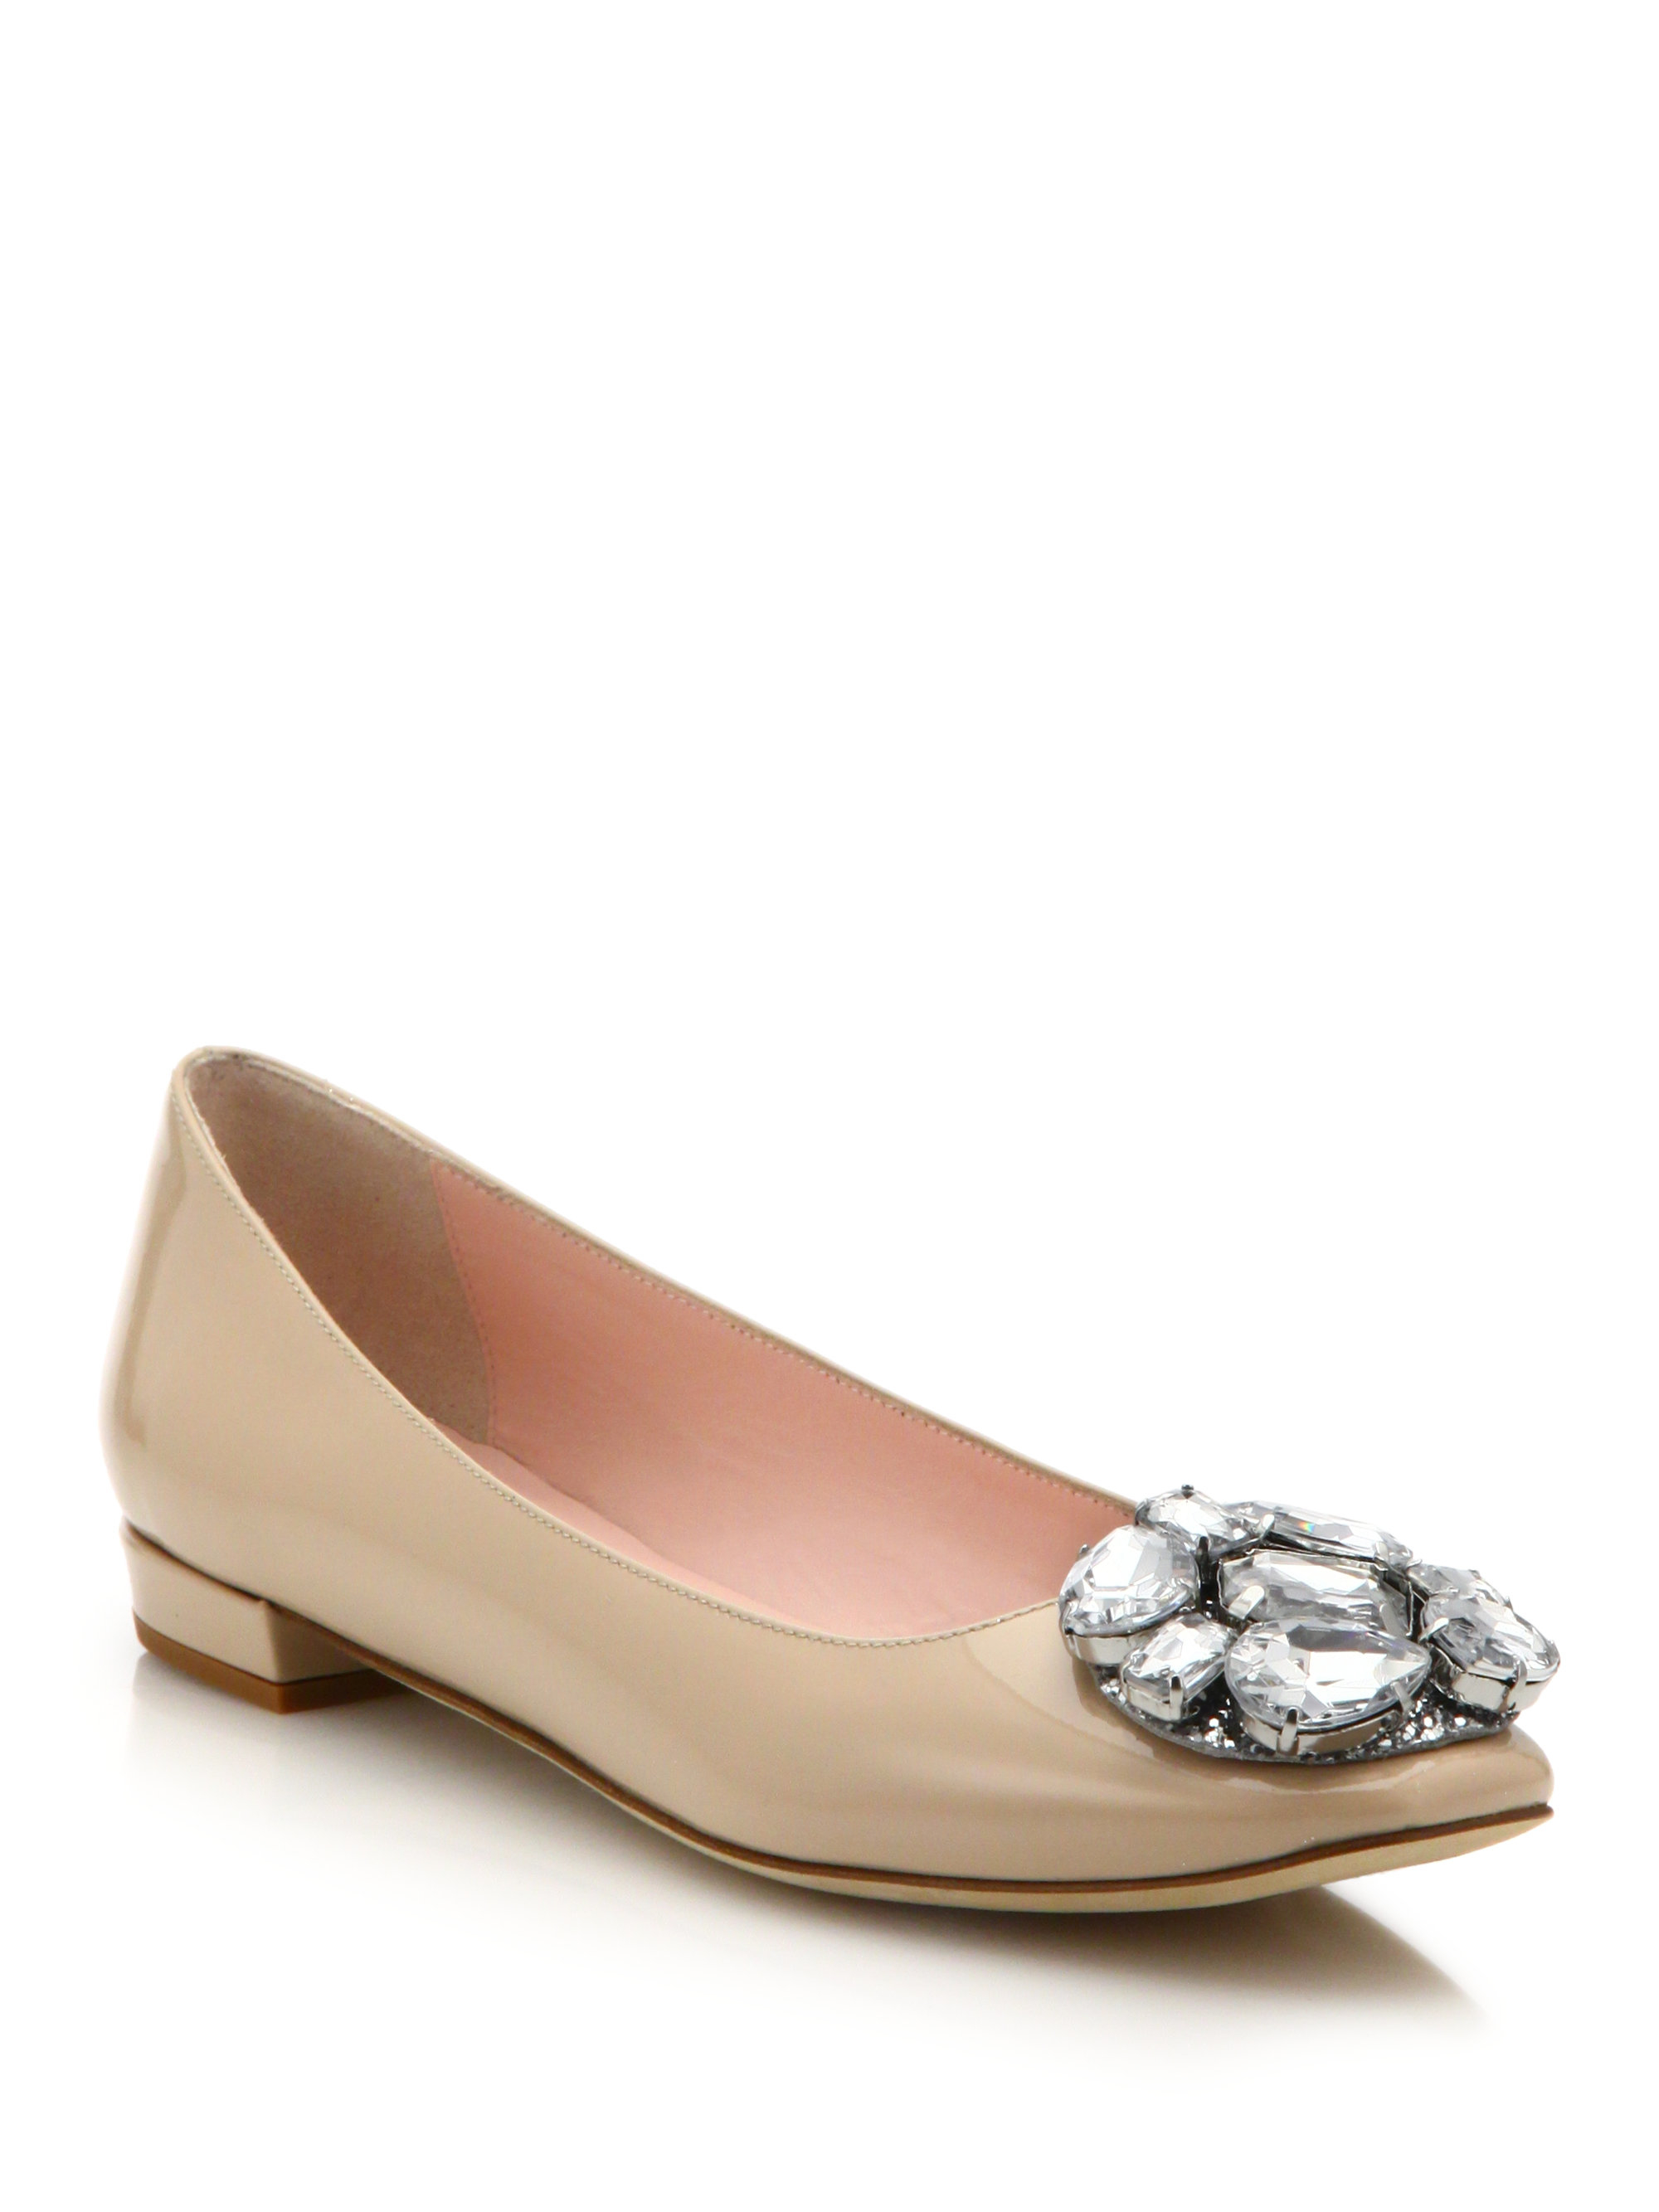 aff049931848 Lyst - Kate Spade Nena Patent Leather Jewel Cluster Ballet Flats in ...